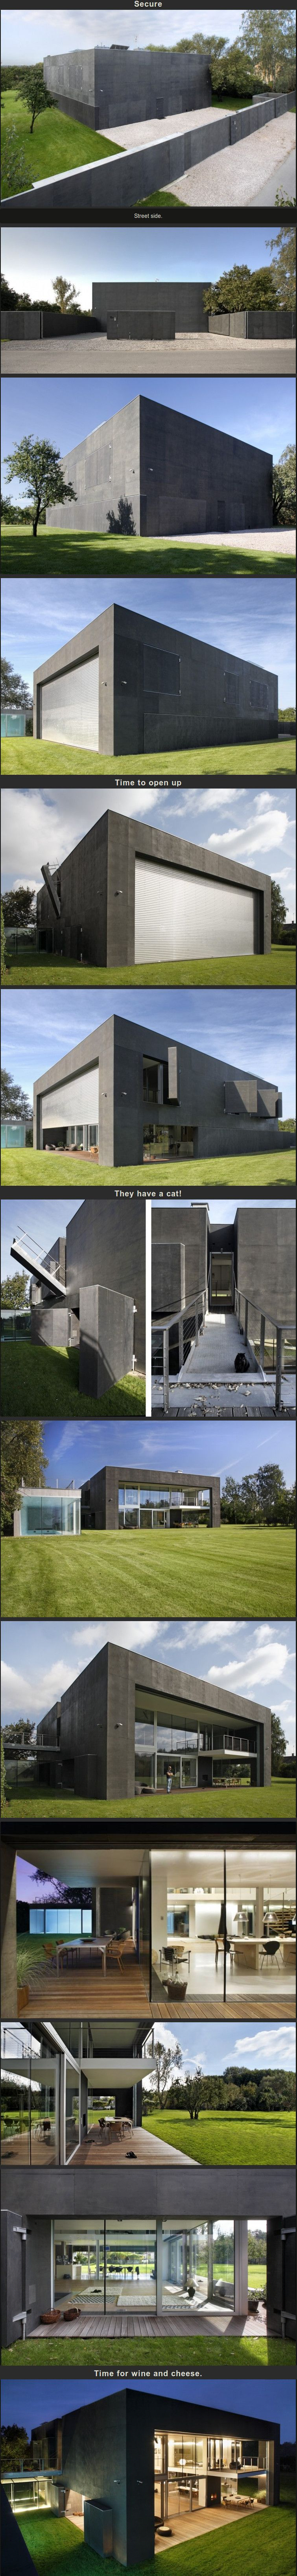 How To Build A Doomsday Family Bunker | Health | Pinterest ... Zombie Proof House Design With Farm Html on